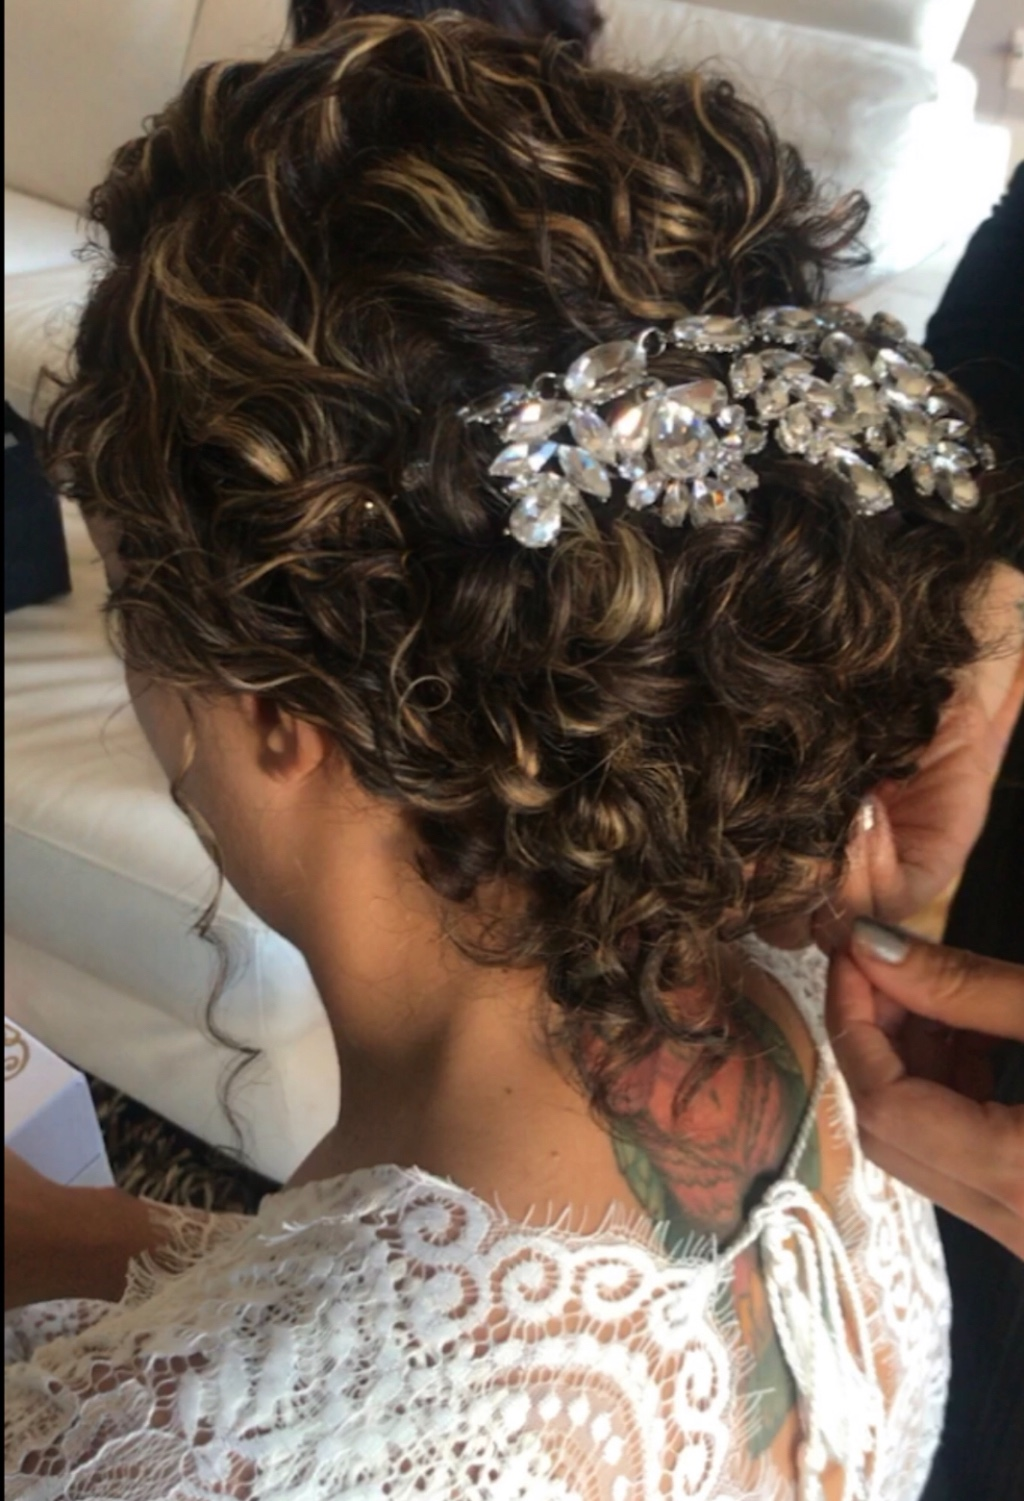 We believe in curls especially on your wedding day❤️